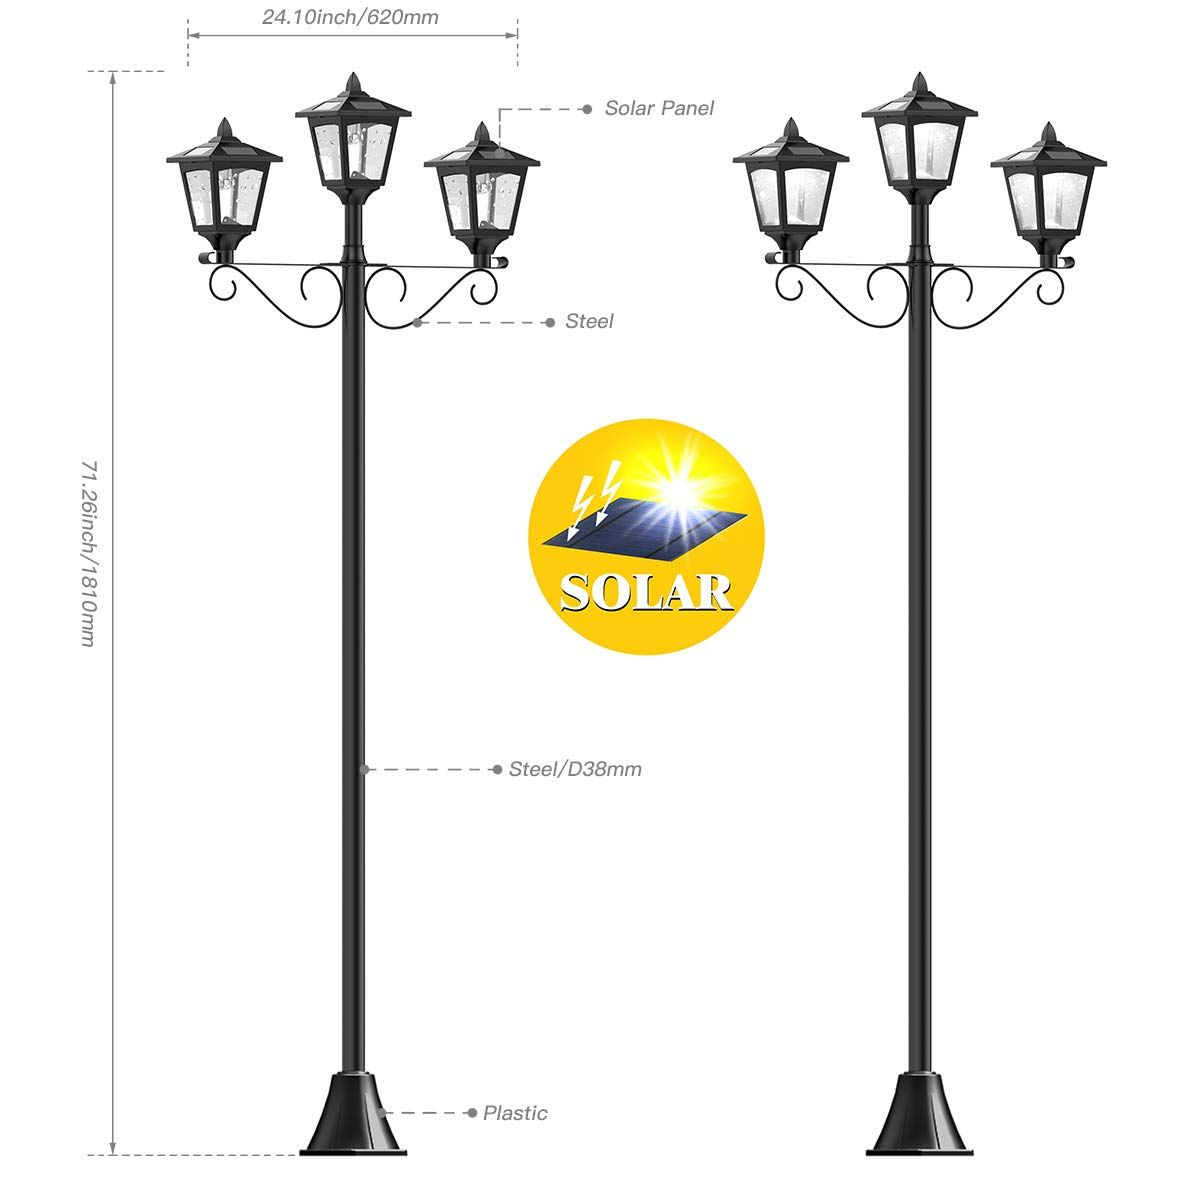 72 Solar Lamp Post Lights Outdoor Triple Head Street Vintage Solar Lamp Outdoor Solar Post Light For Garden Lawn Planter Not Included Lamp Post Lights Post Lights Outdoor Post Lights